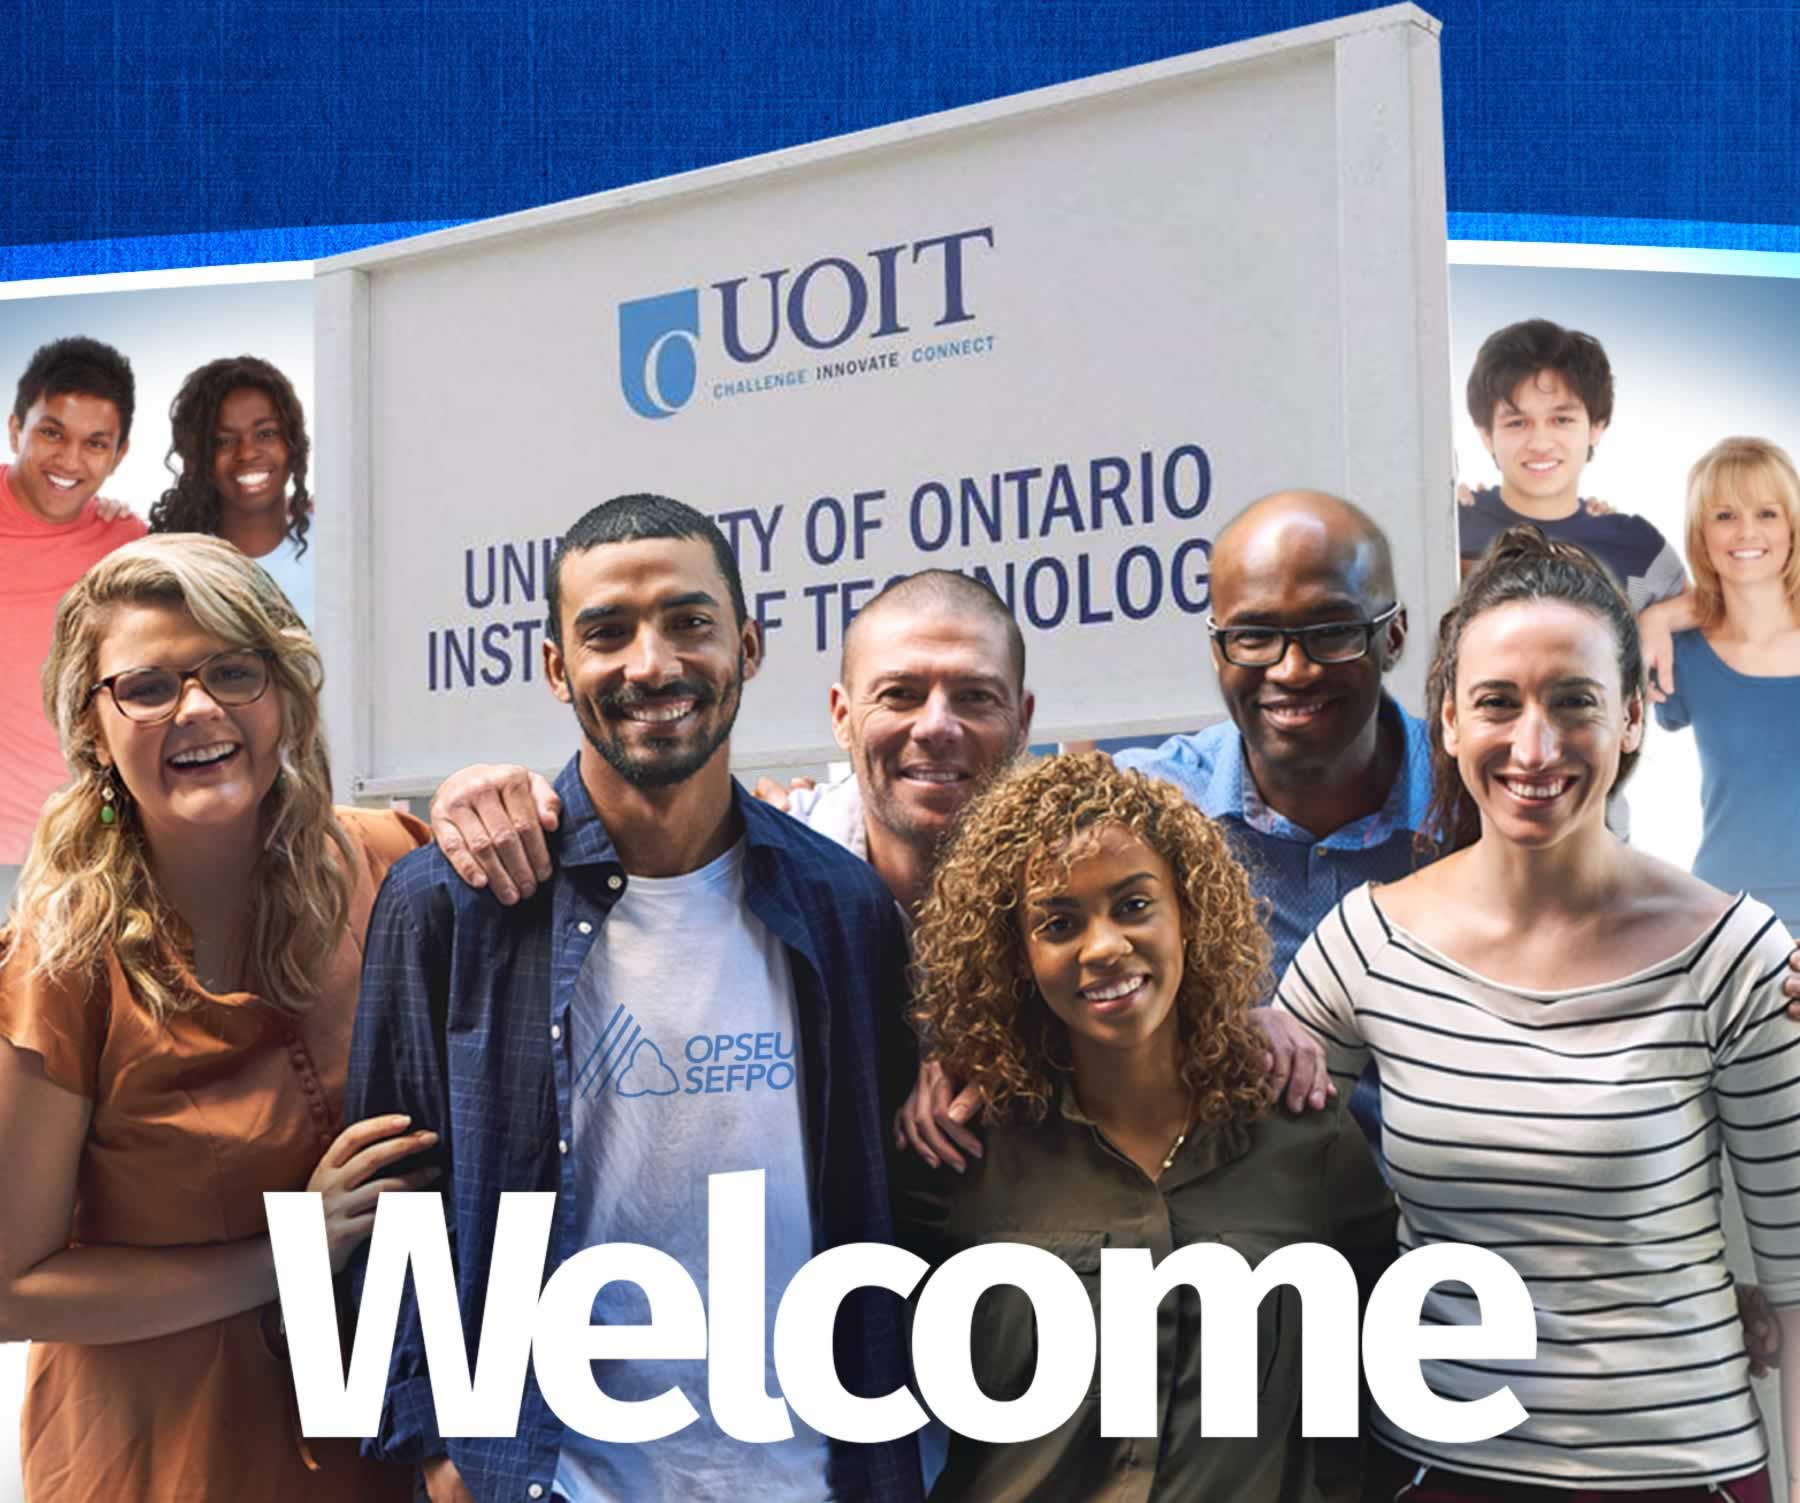 Welcome - OPSEU members in front of a University of Ontario Institute of Technology sign.